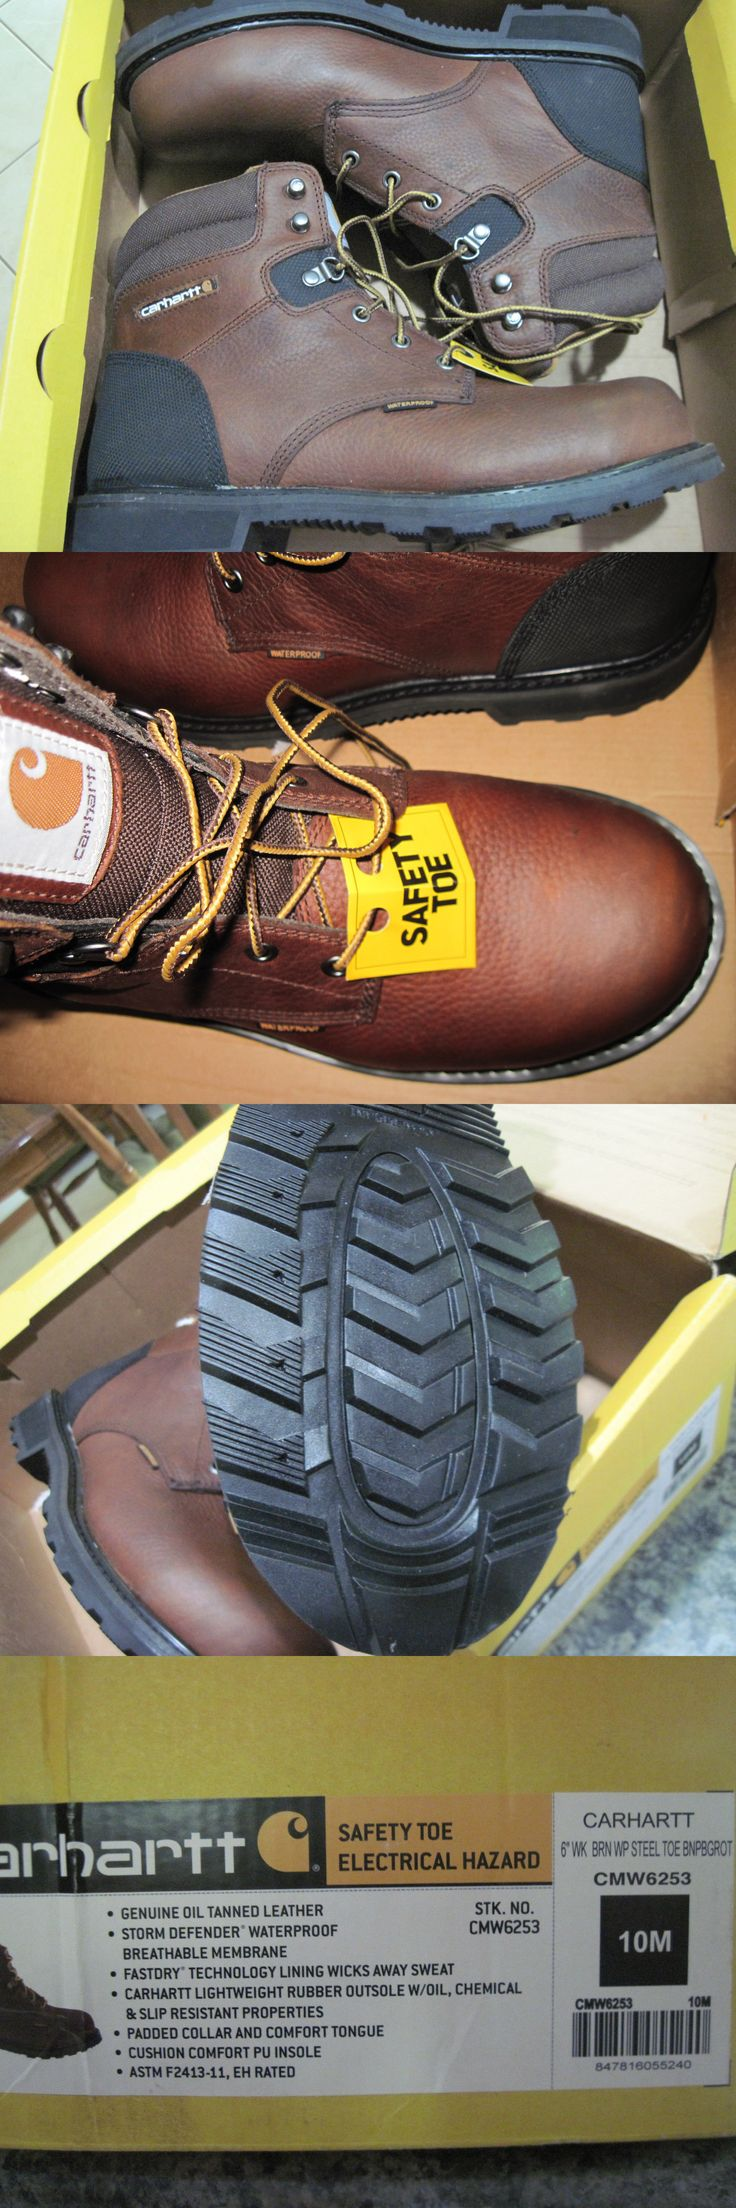 Occupational 11501: Carhartt Waterproof Work Boots Cmw6253 6 Safety Toe Boot Size 10M New -> BUY IT NOW ONLY: $45 on eBay!